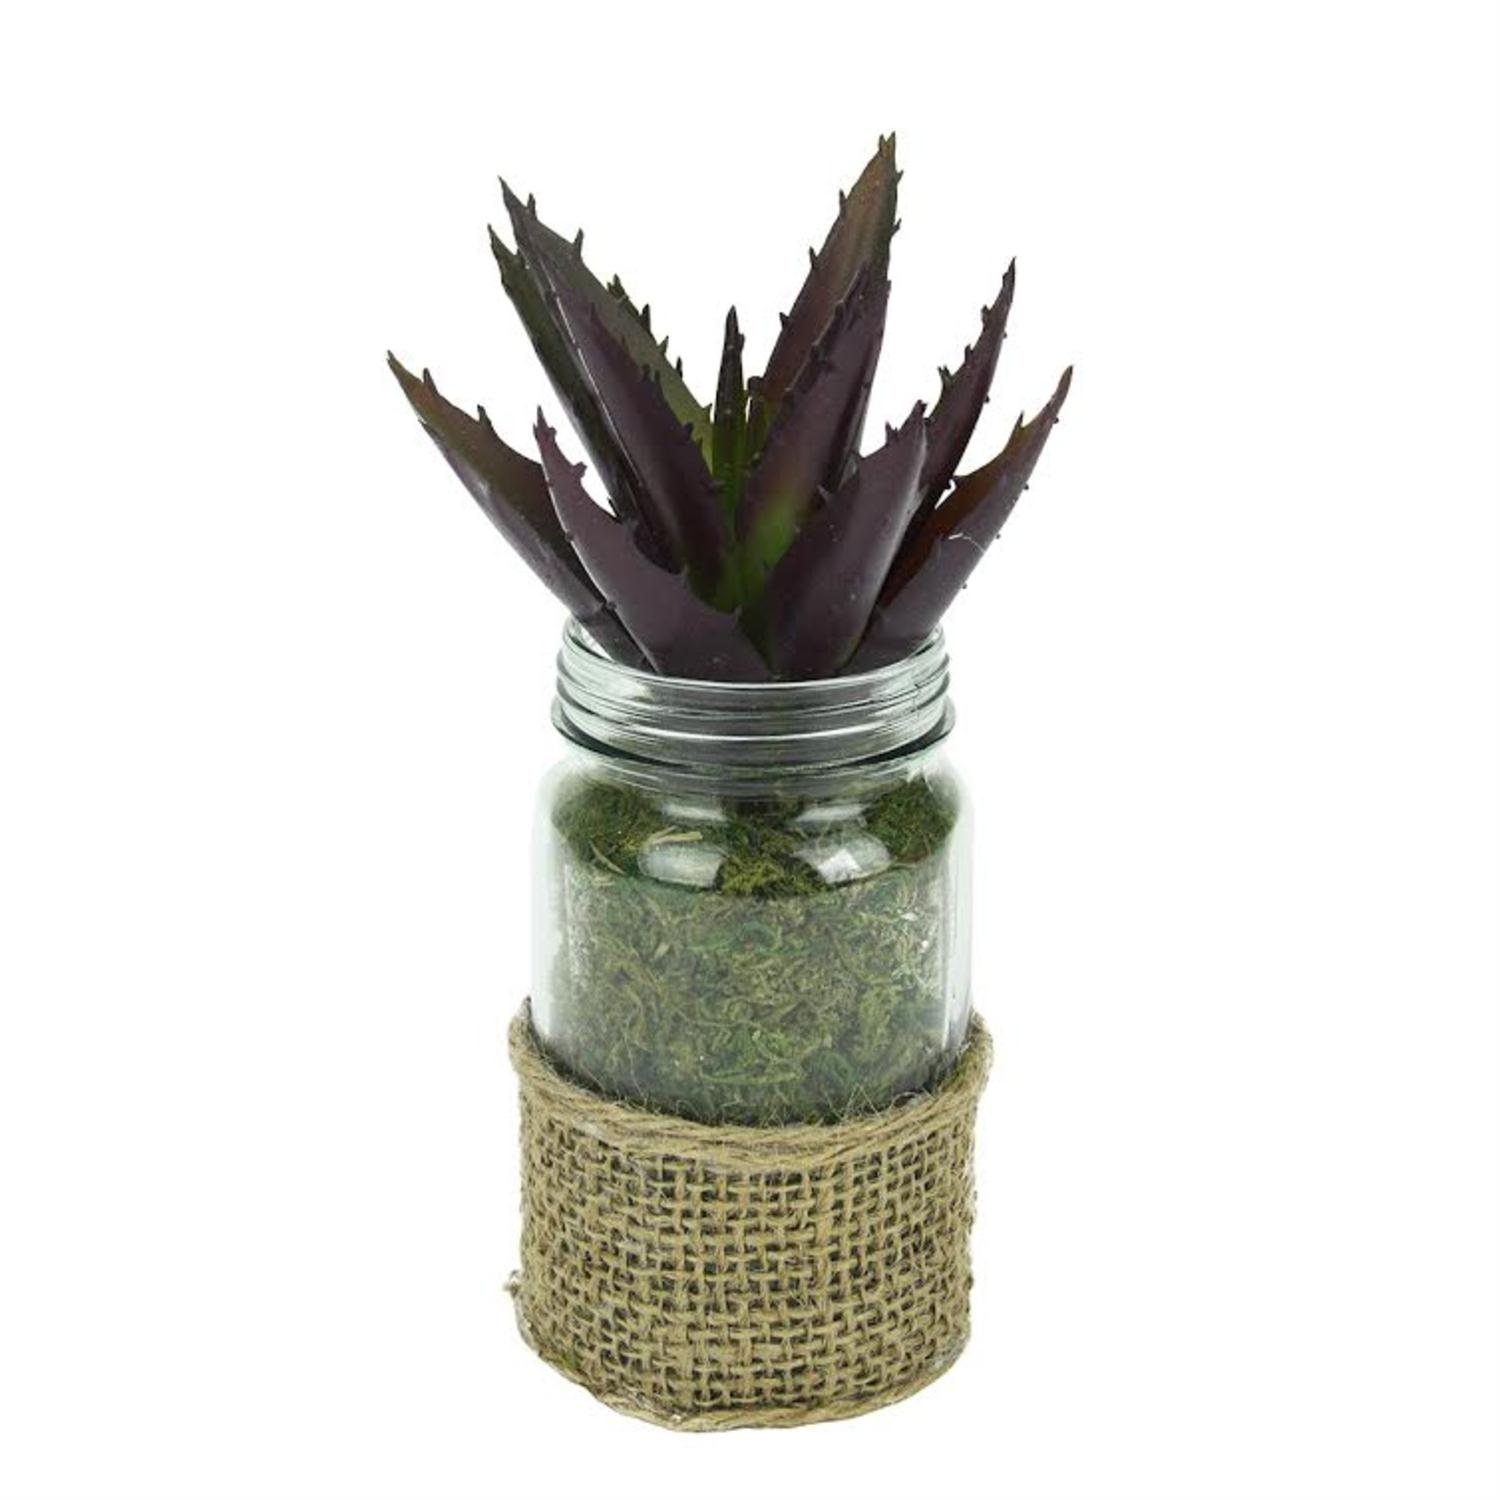 Artificial Potted Aloe Succulent Plant in Glass Jar with Burlap Grip 7.25""